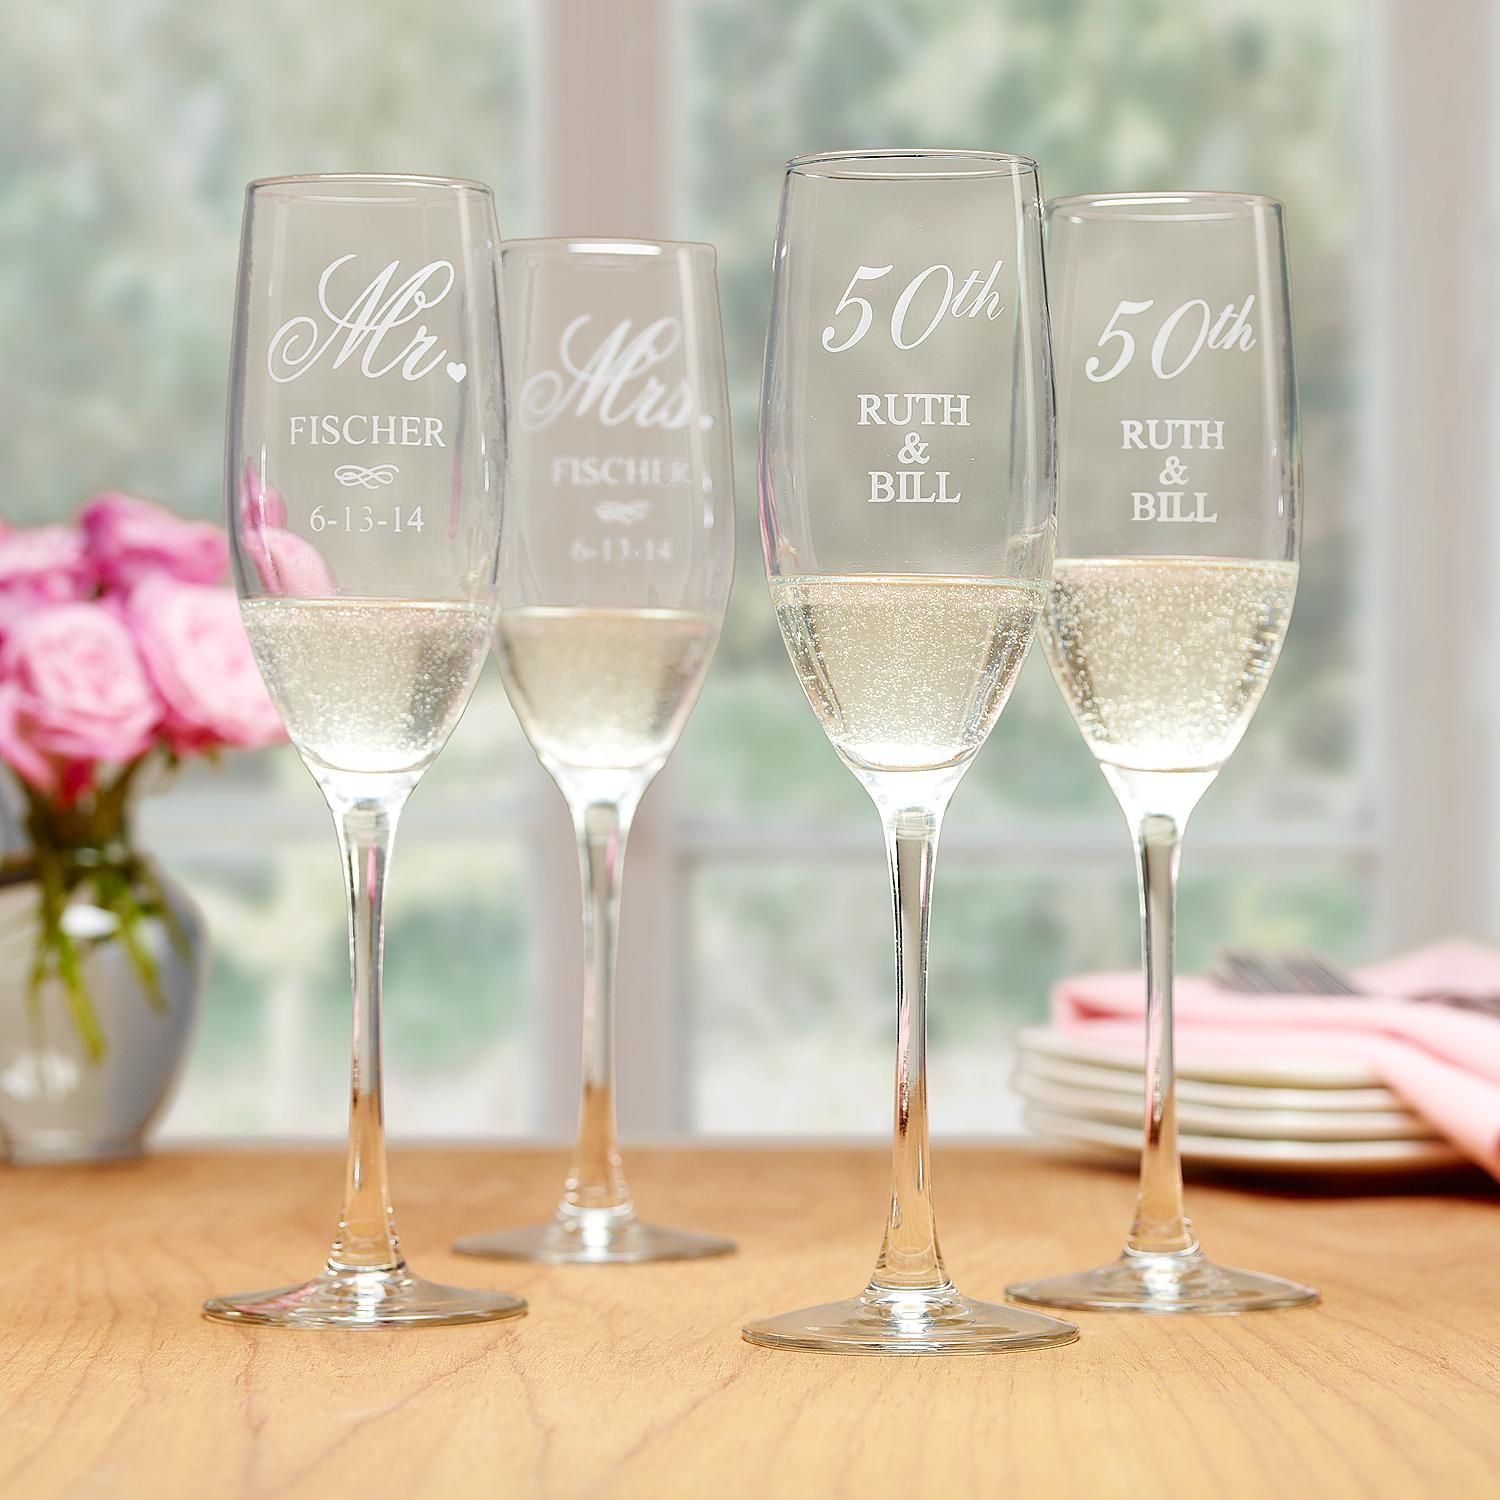 30th Wedding Anniversary Gifts For Husband: 25th Anniversary Gifts, 50 Wedding